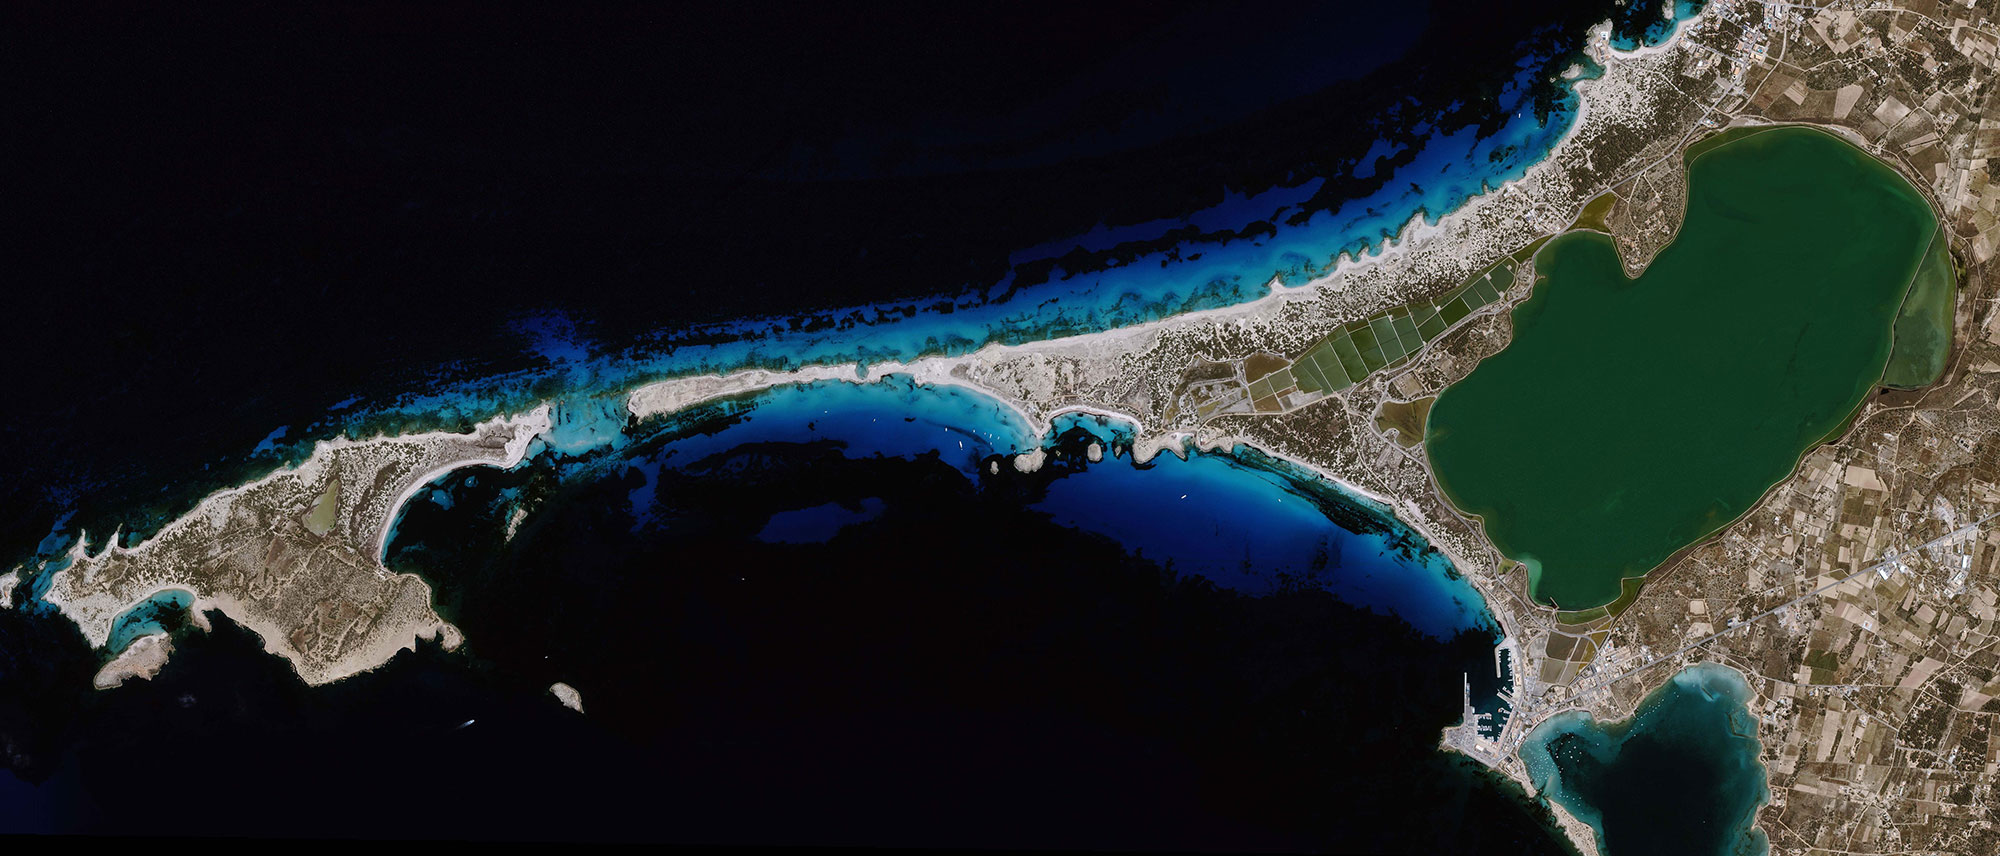 Satellite data analysis imagery images